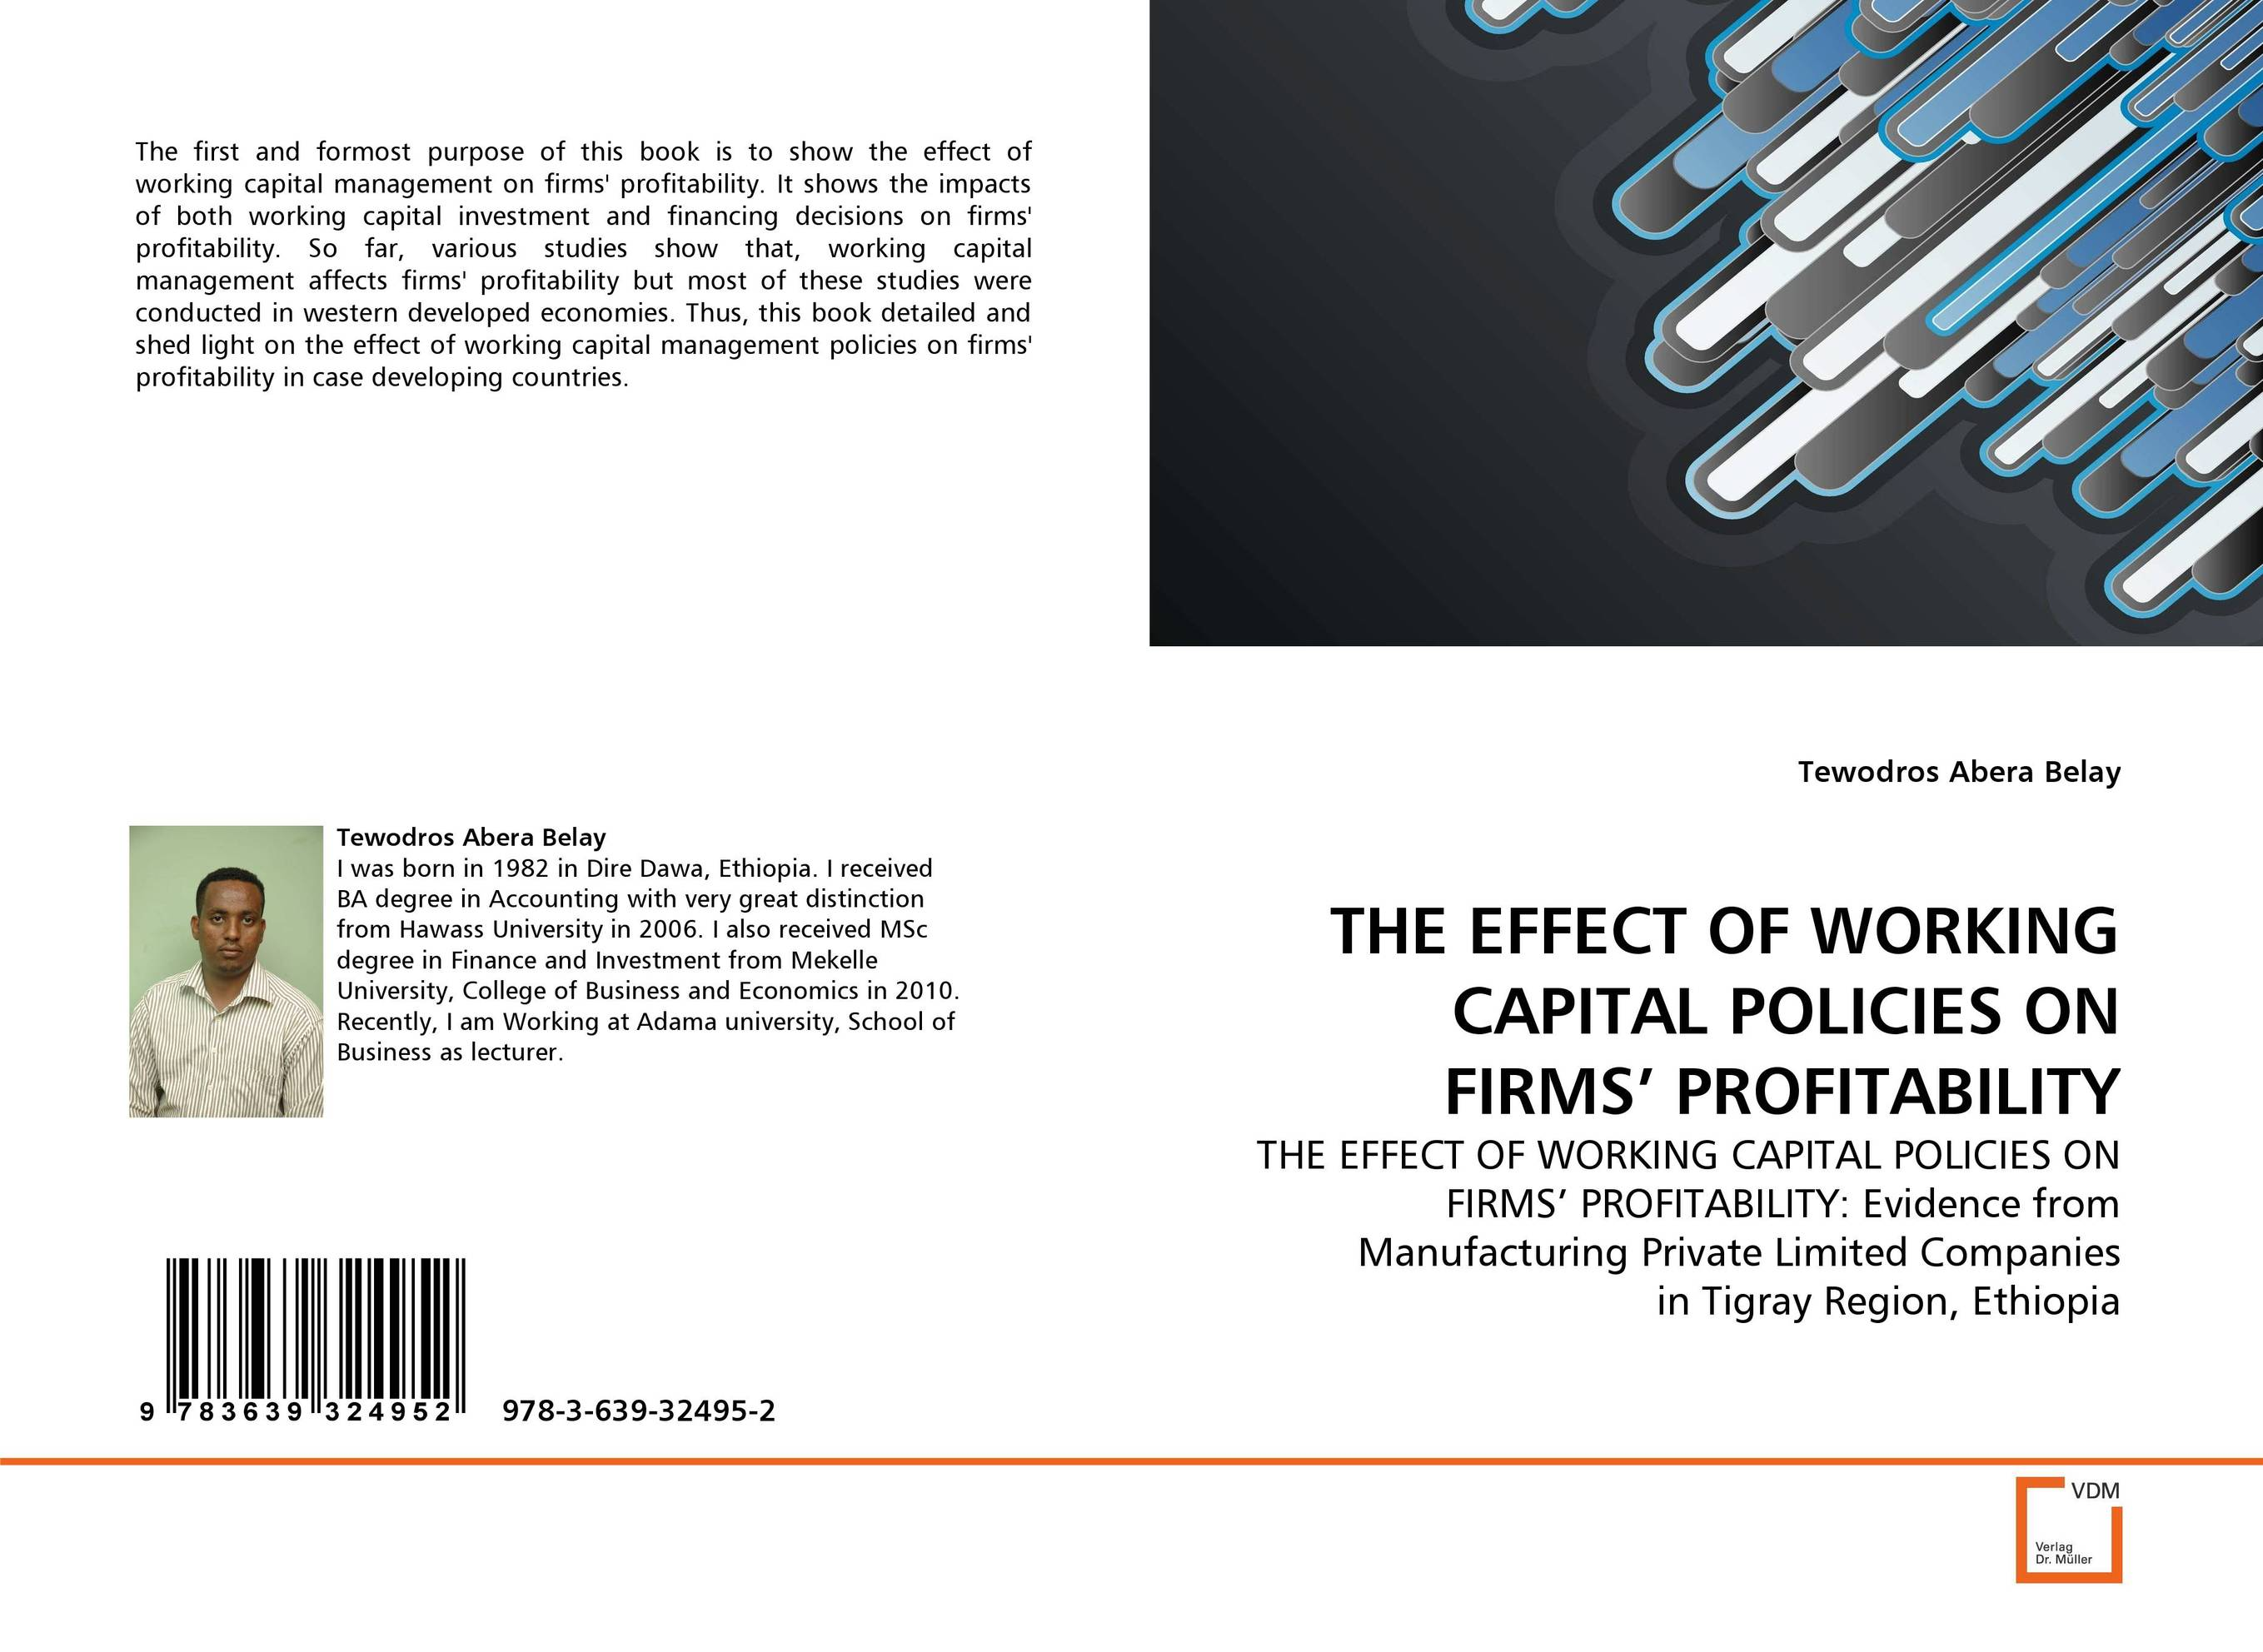 THE EFFECT OF WORKING CAPITAL POLICIES ON FIRMS'' PROFITABILITY james sagner working capital management applications and case studies